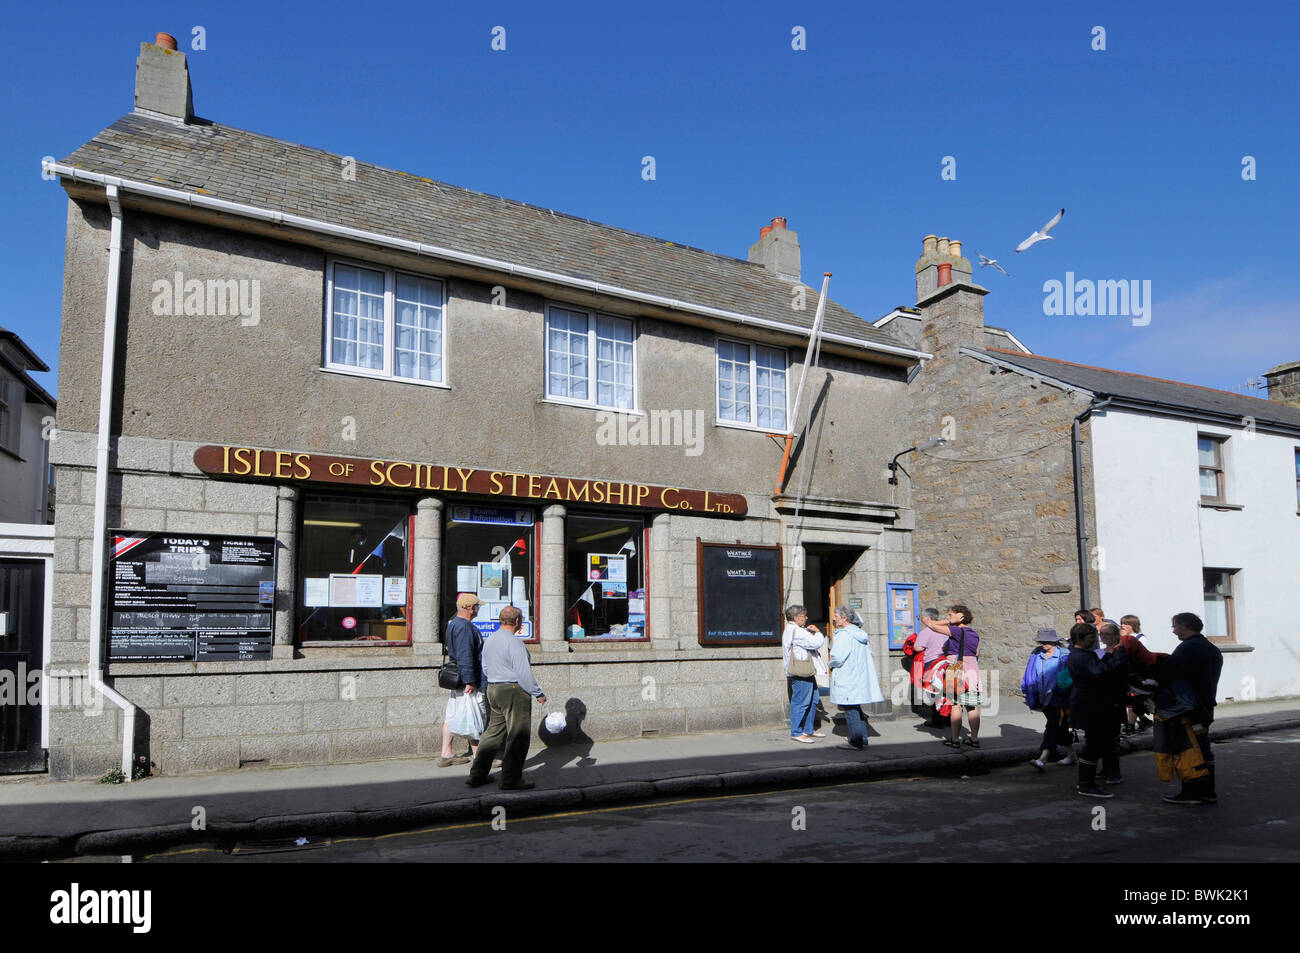 The busy tourist information centre in Hugh Town, St. Mary's,Isle of Scilly, Britain - Stock Image